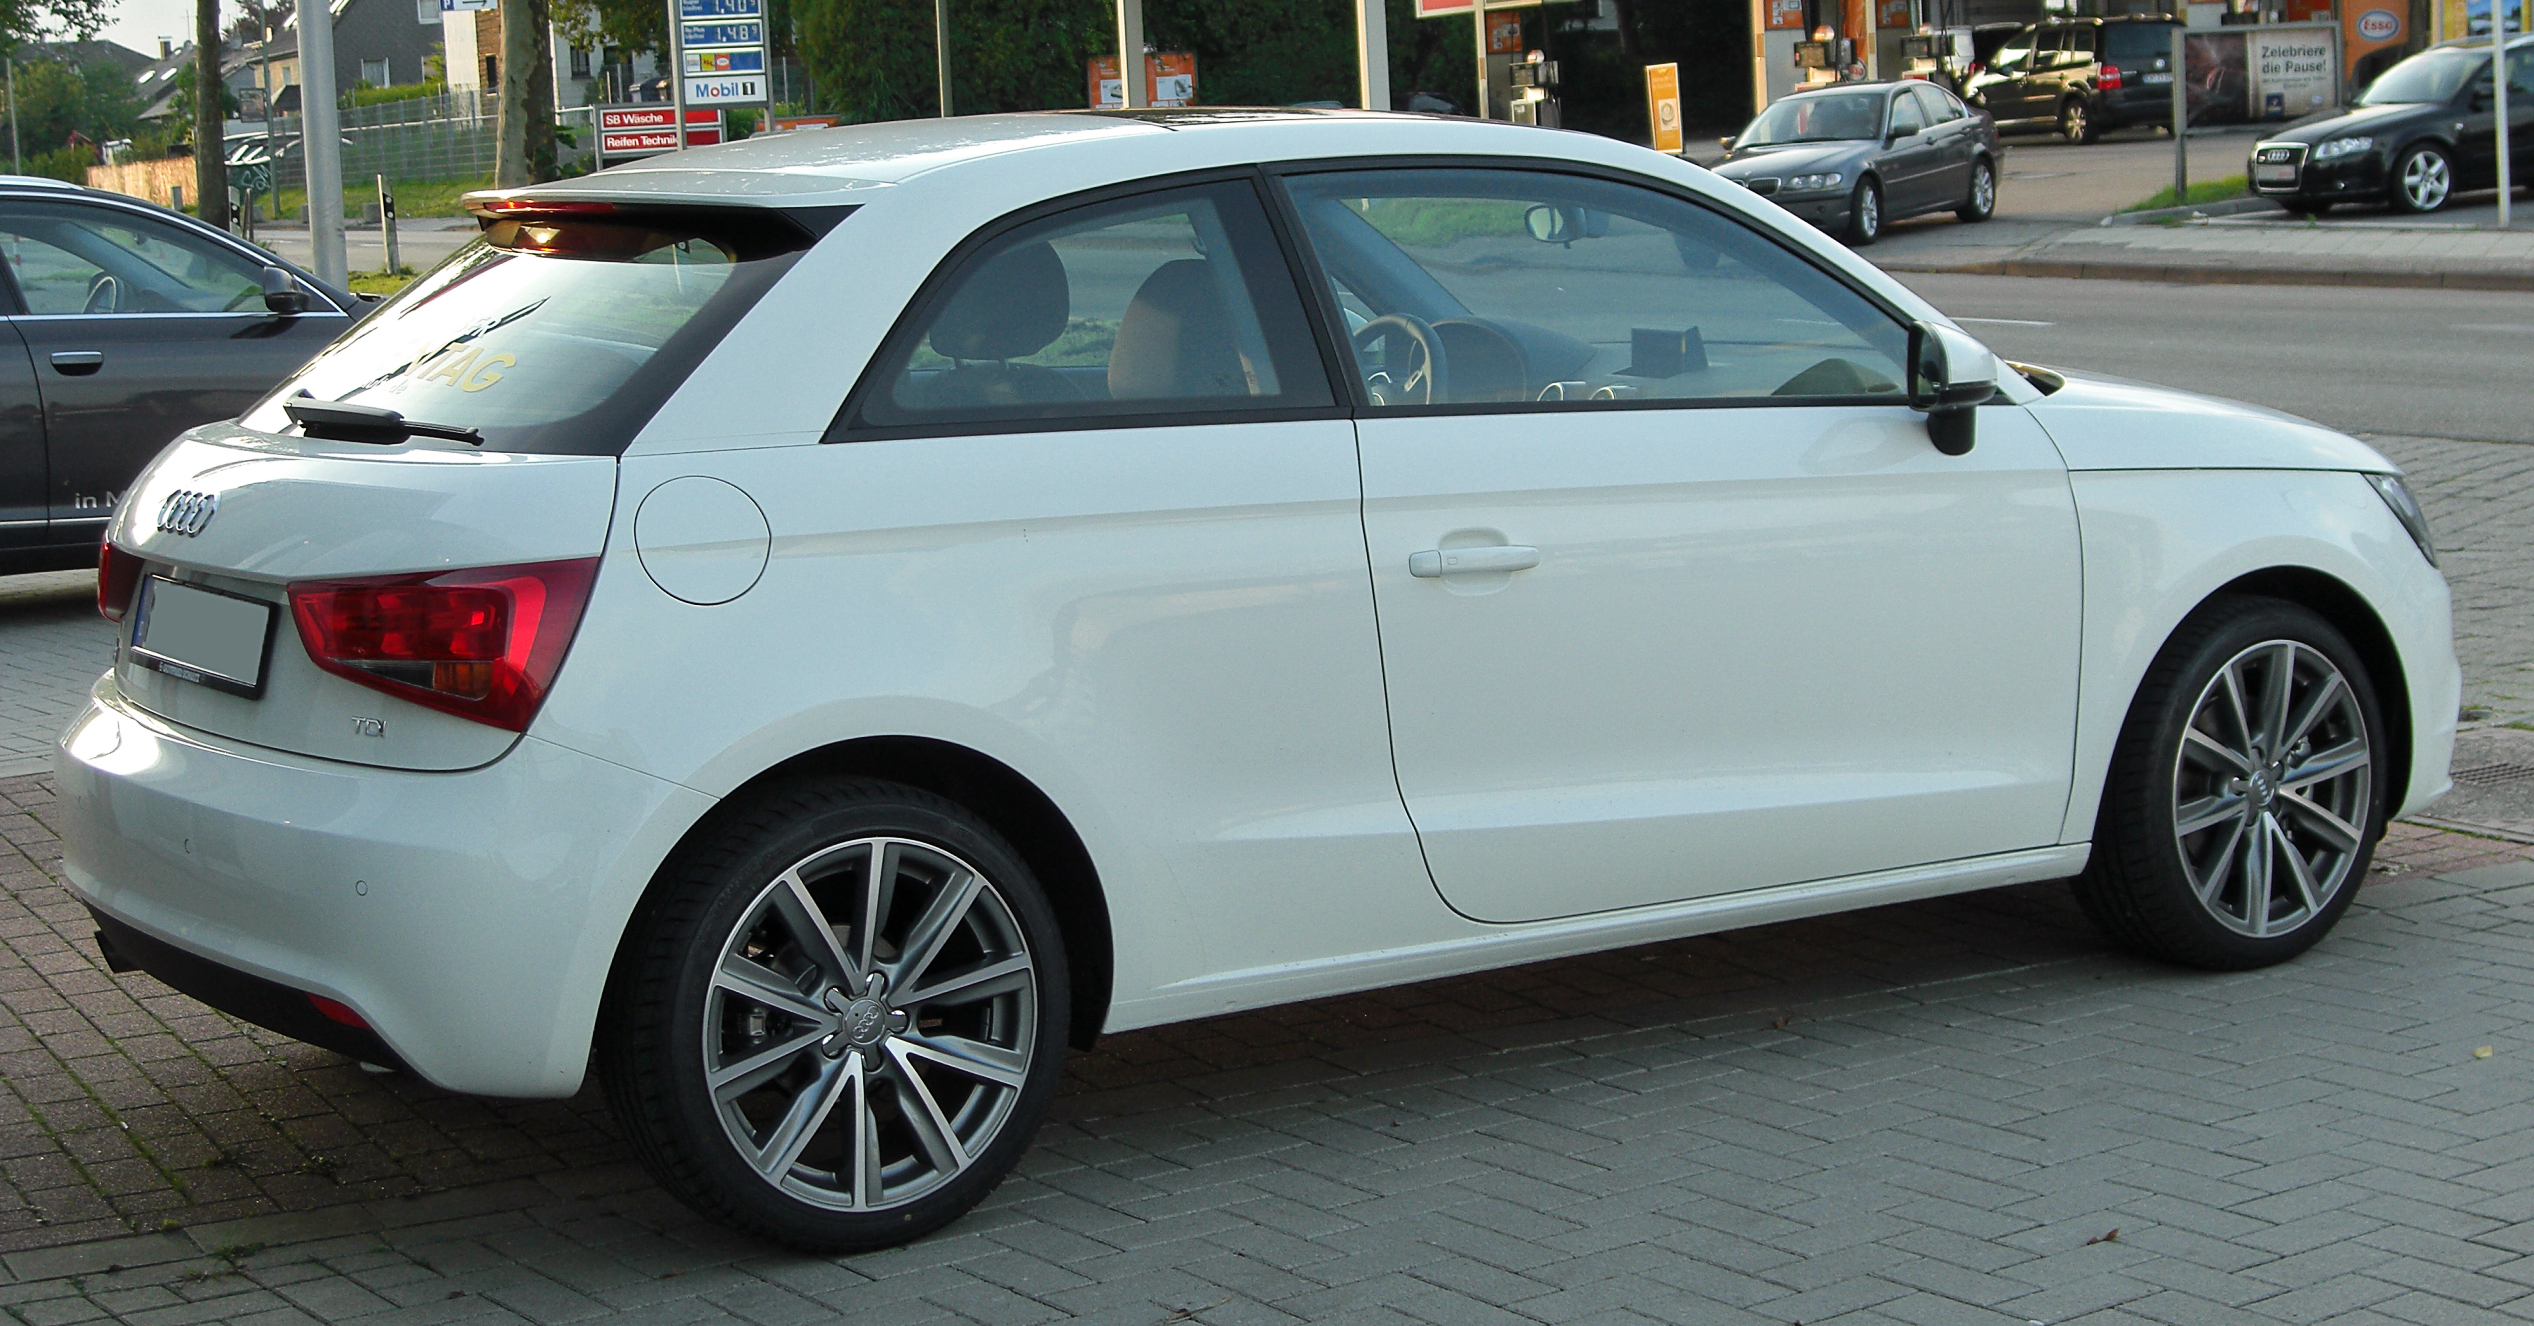 Le Meilleur Audi A1 1 6 Tdi Technical Details History Photos On Ce Mois Ci